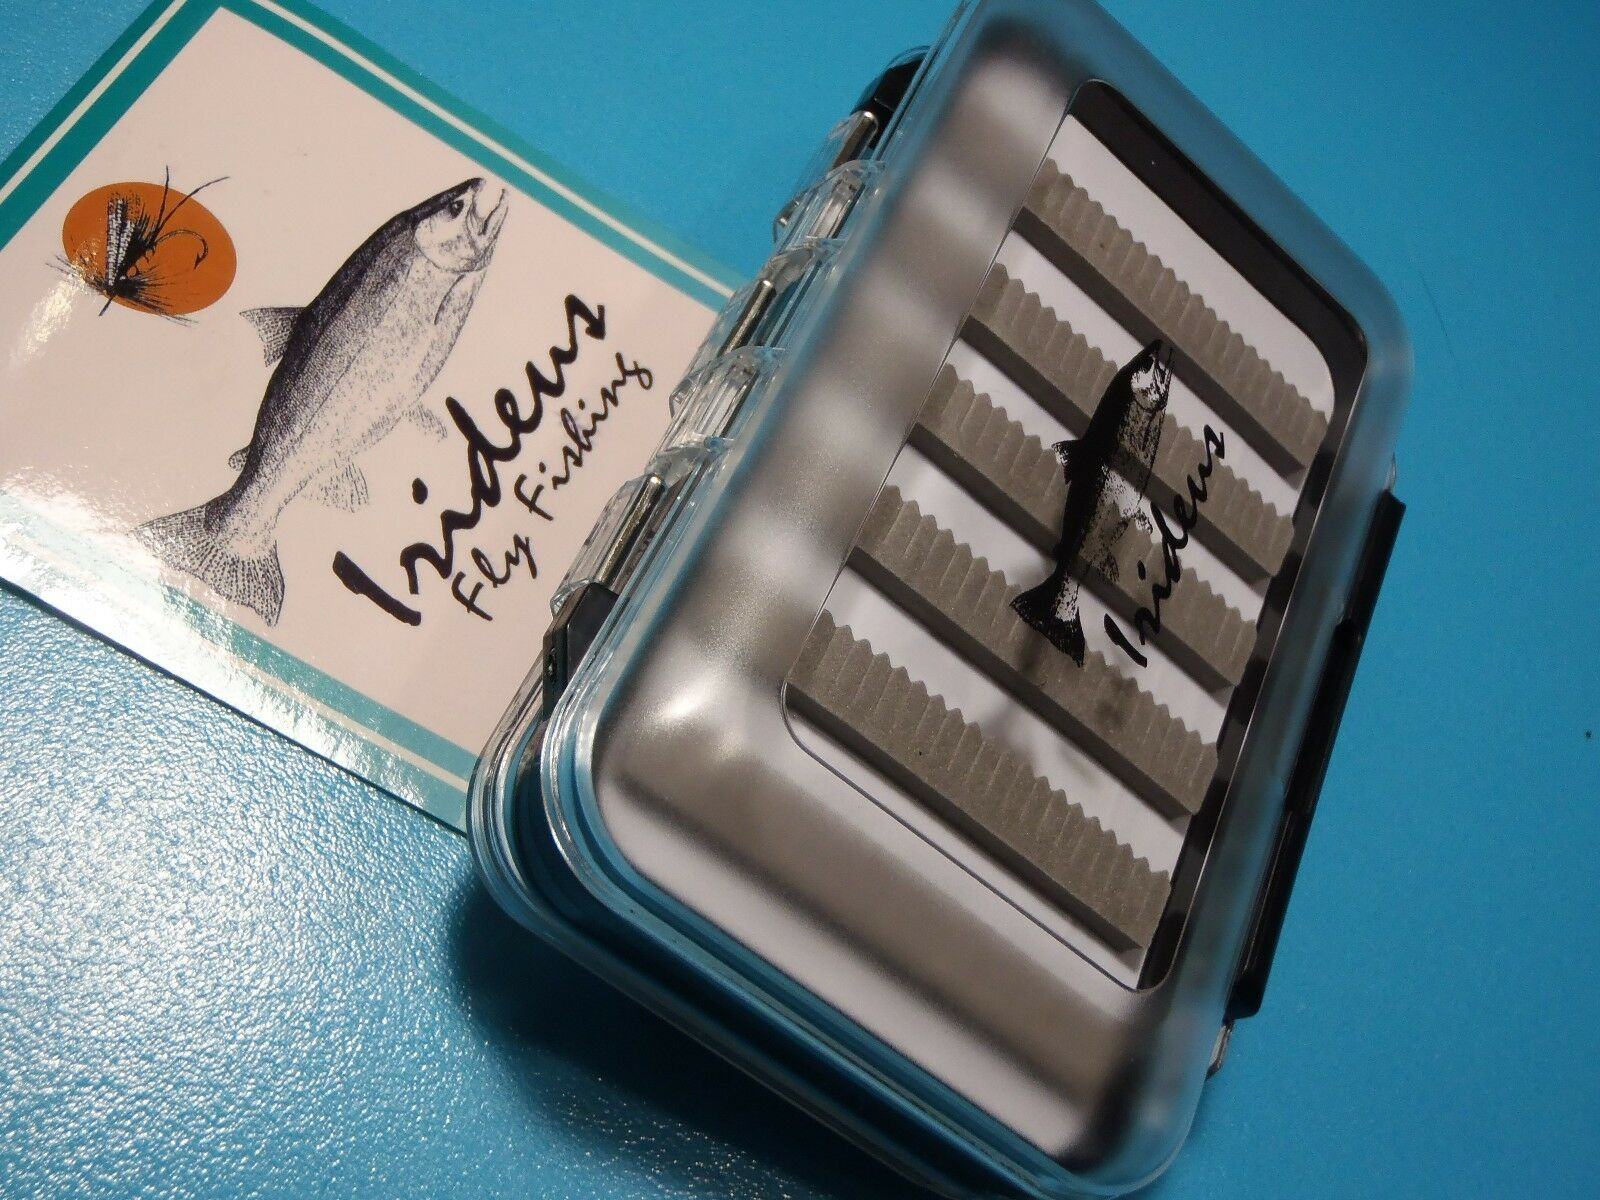 Irideus Kenai Fly Boxes 3 Clear Large Double Sided Trout Steelhead Fly Fishing